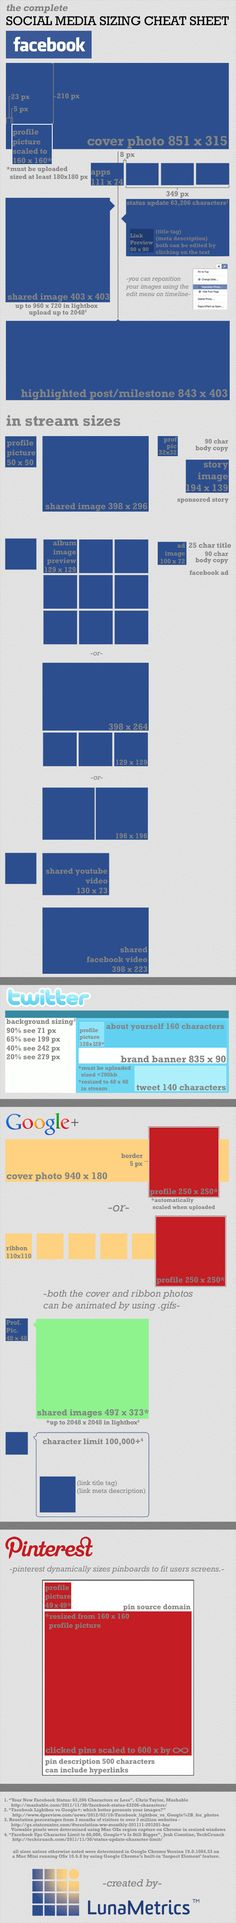 Social Media Cheat Sheet for Image Dimensions